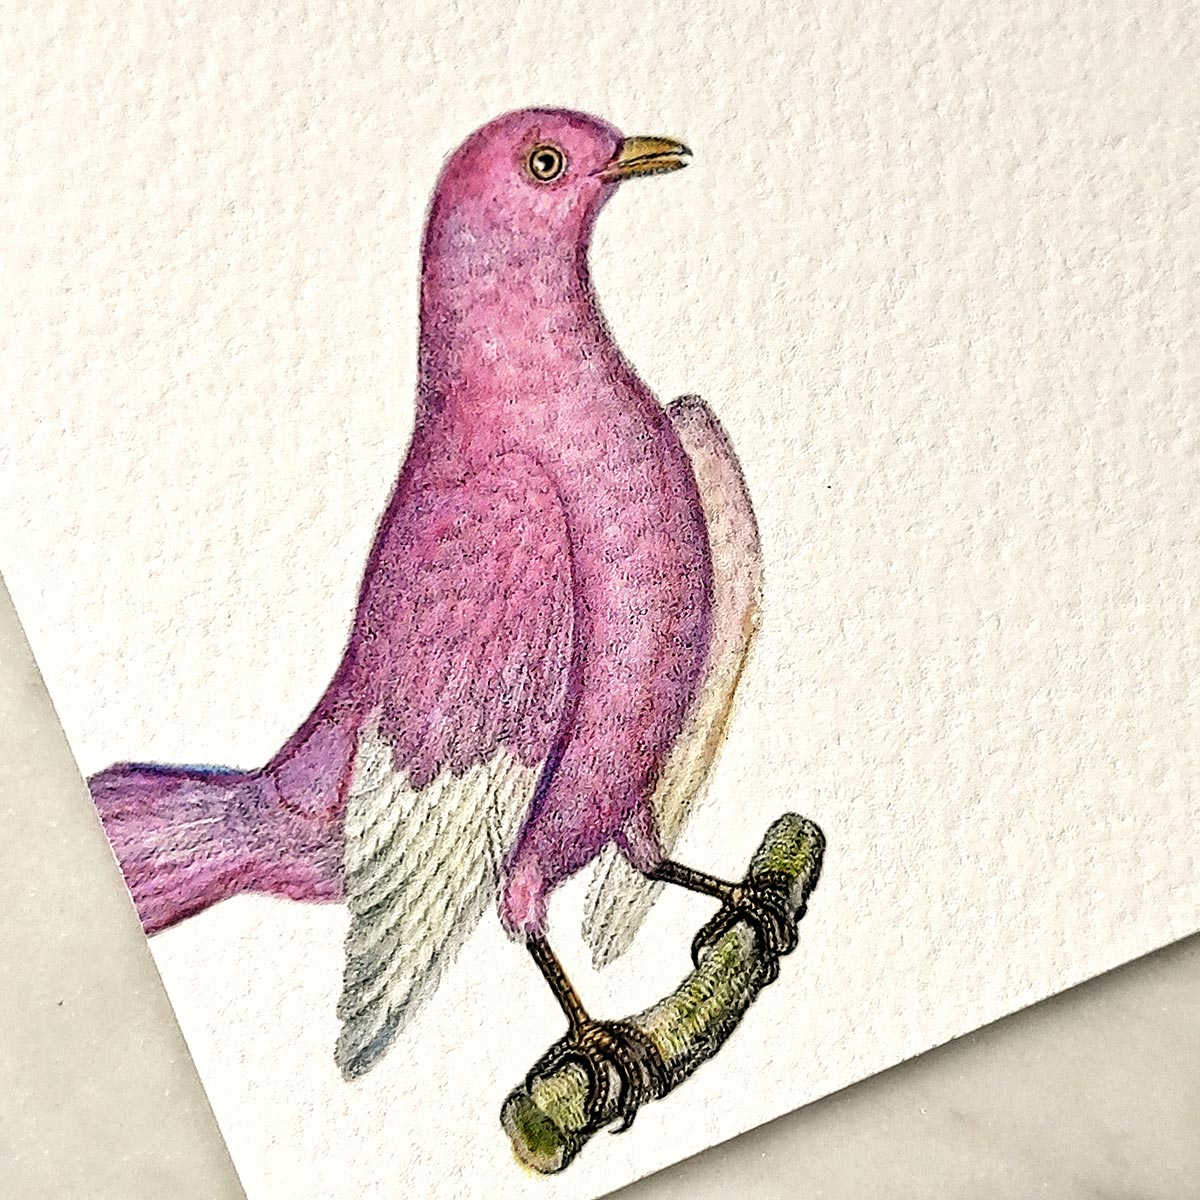 detail of The Punctilious Mr. P's 'chromatic cuckoo' personalized note card showing pink bird